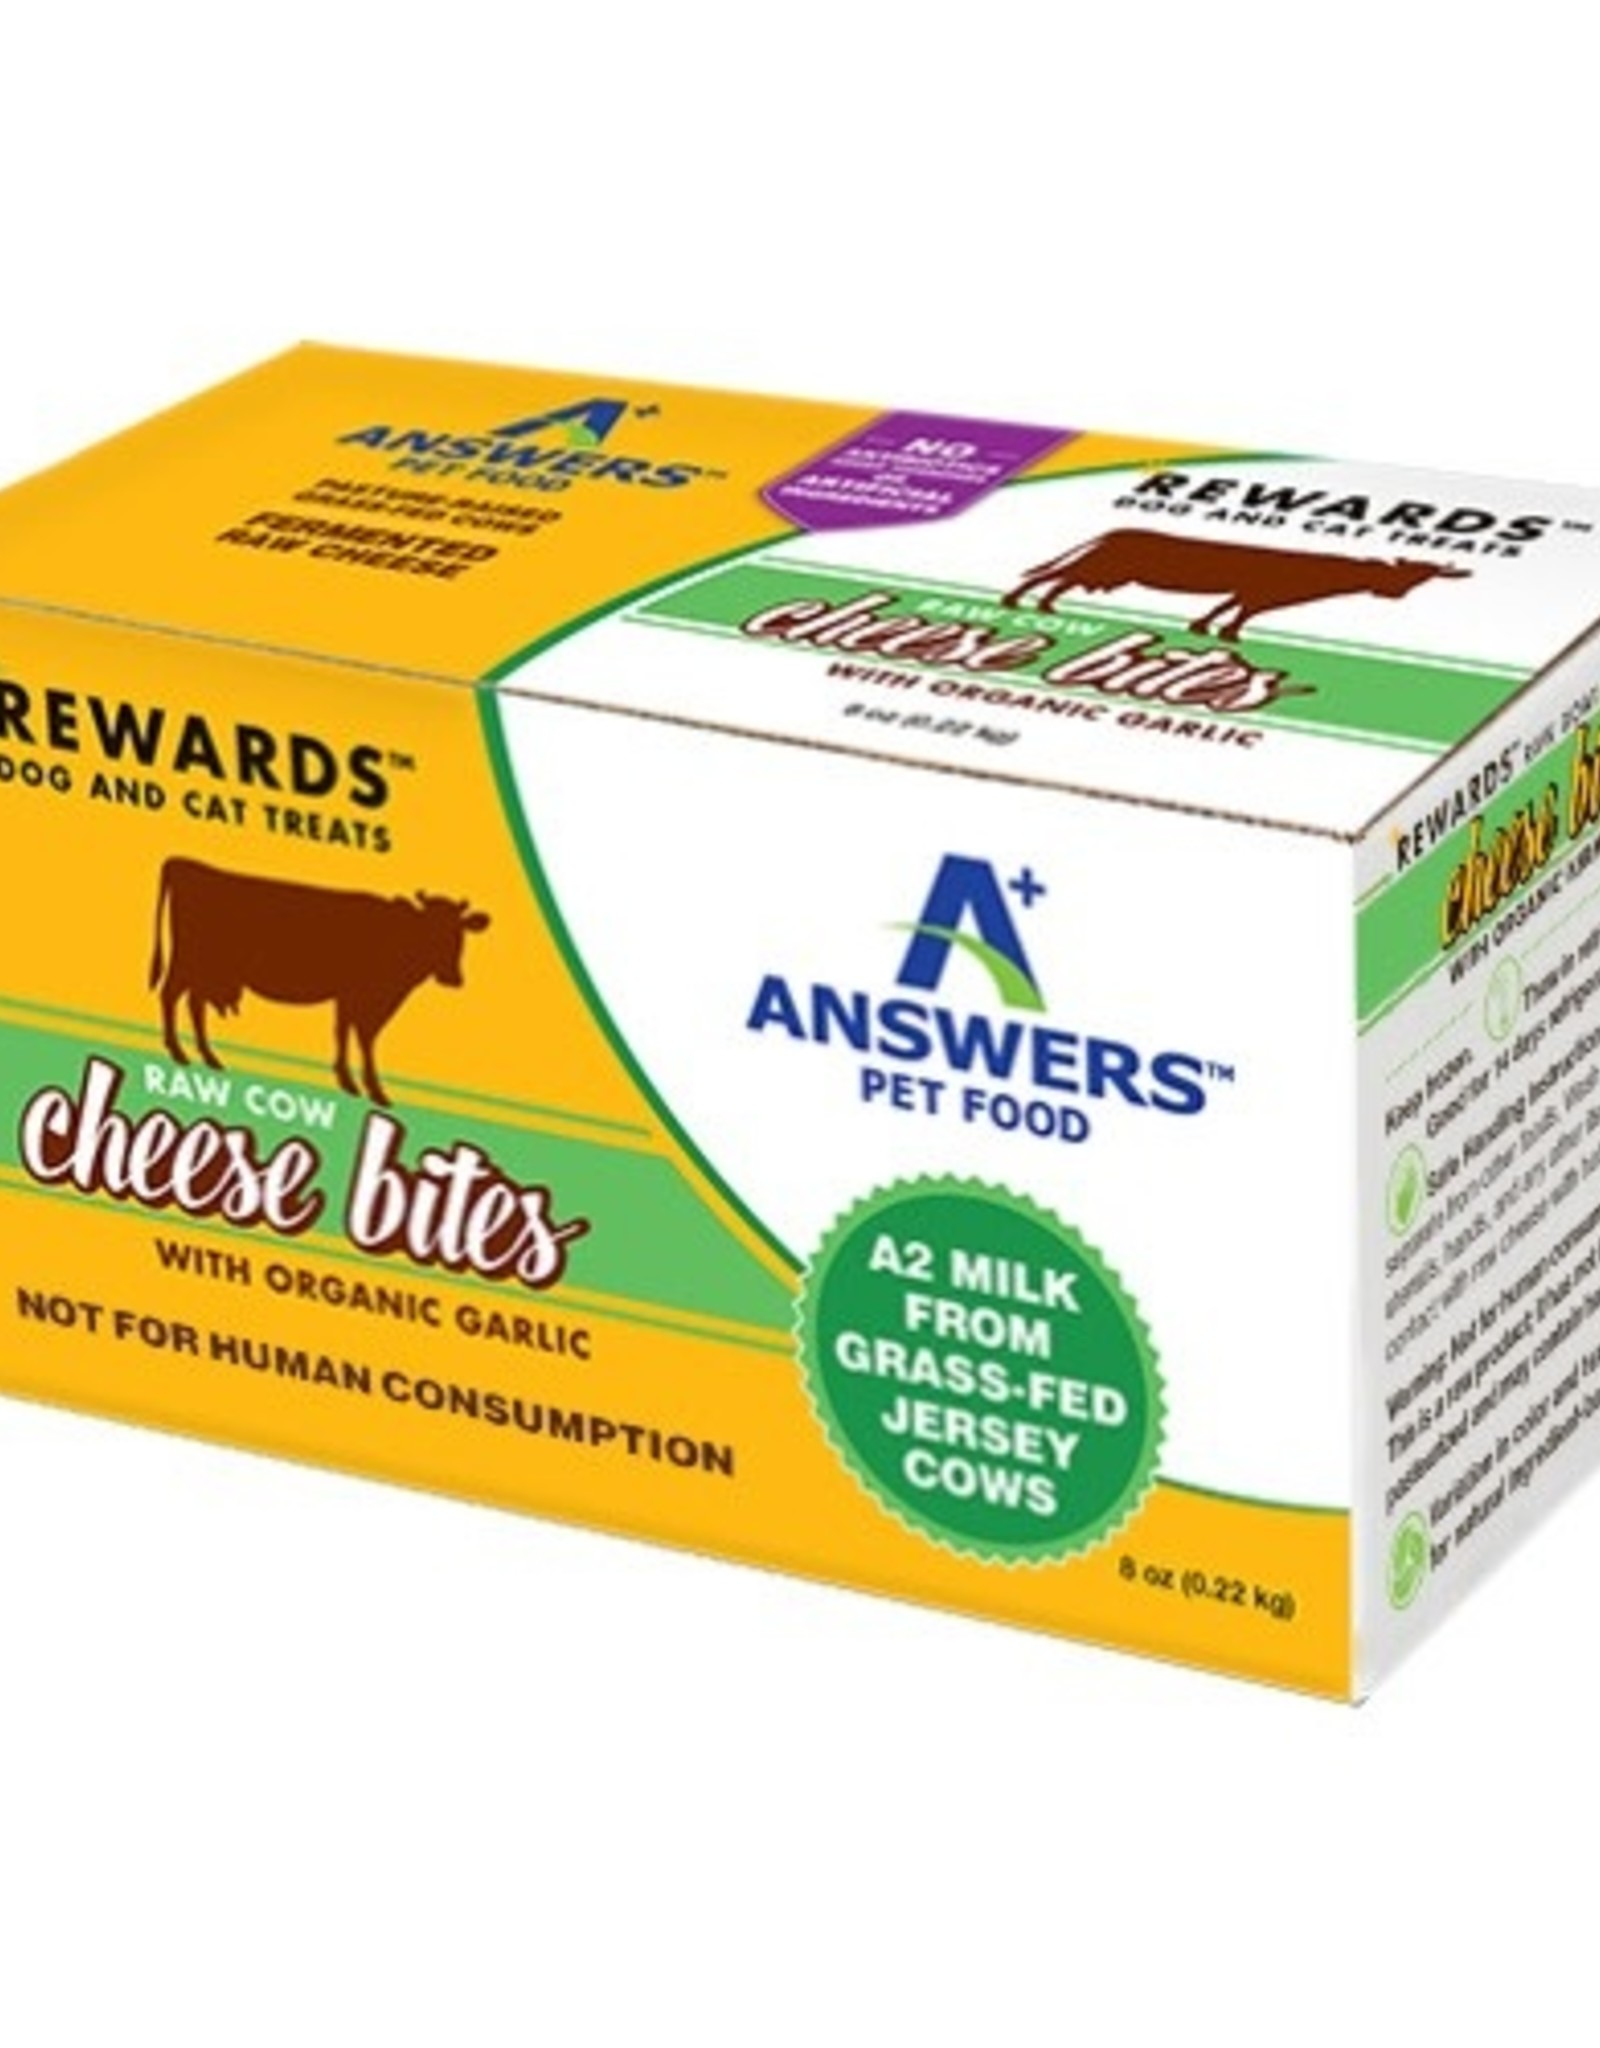 Answers Answers Raw Cow Cheese Organic Garlic